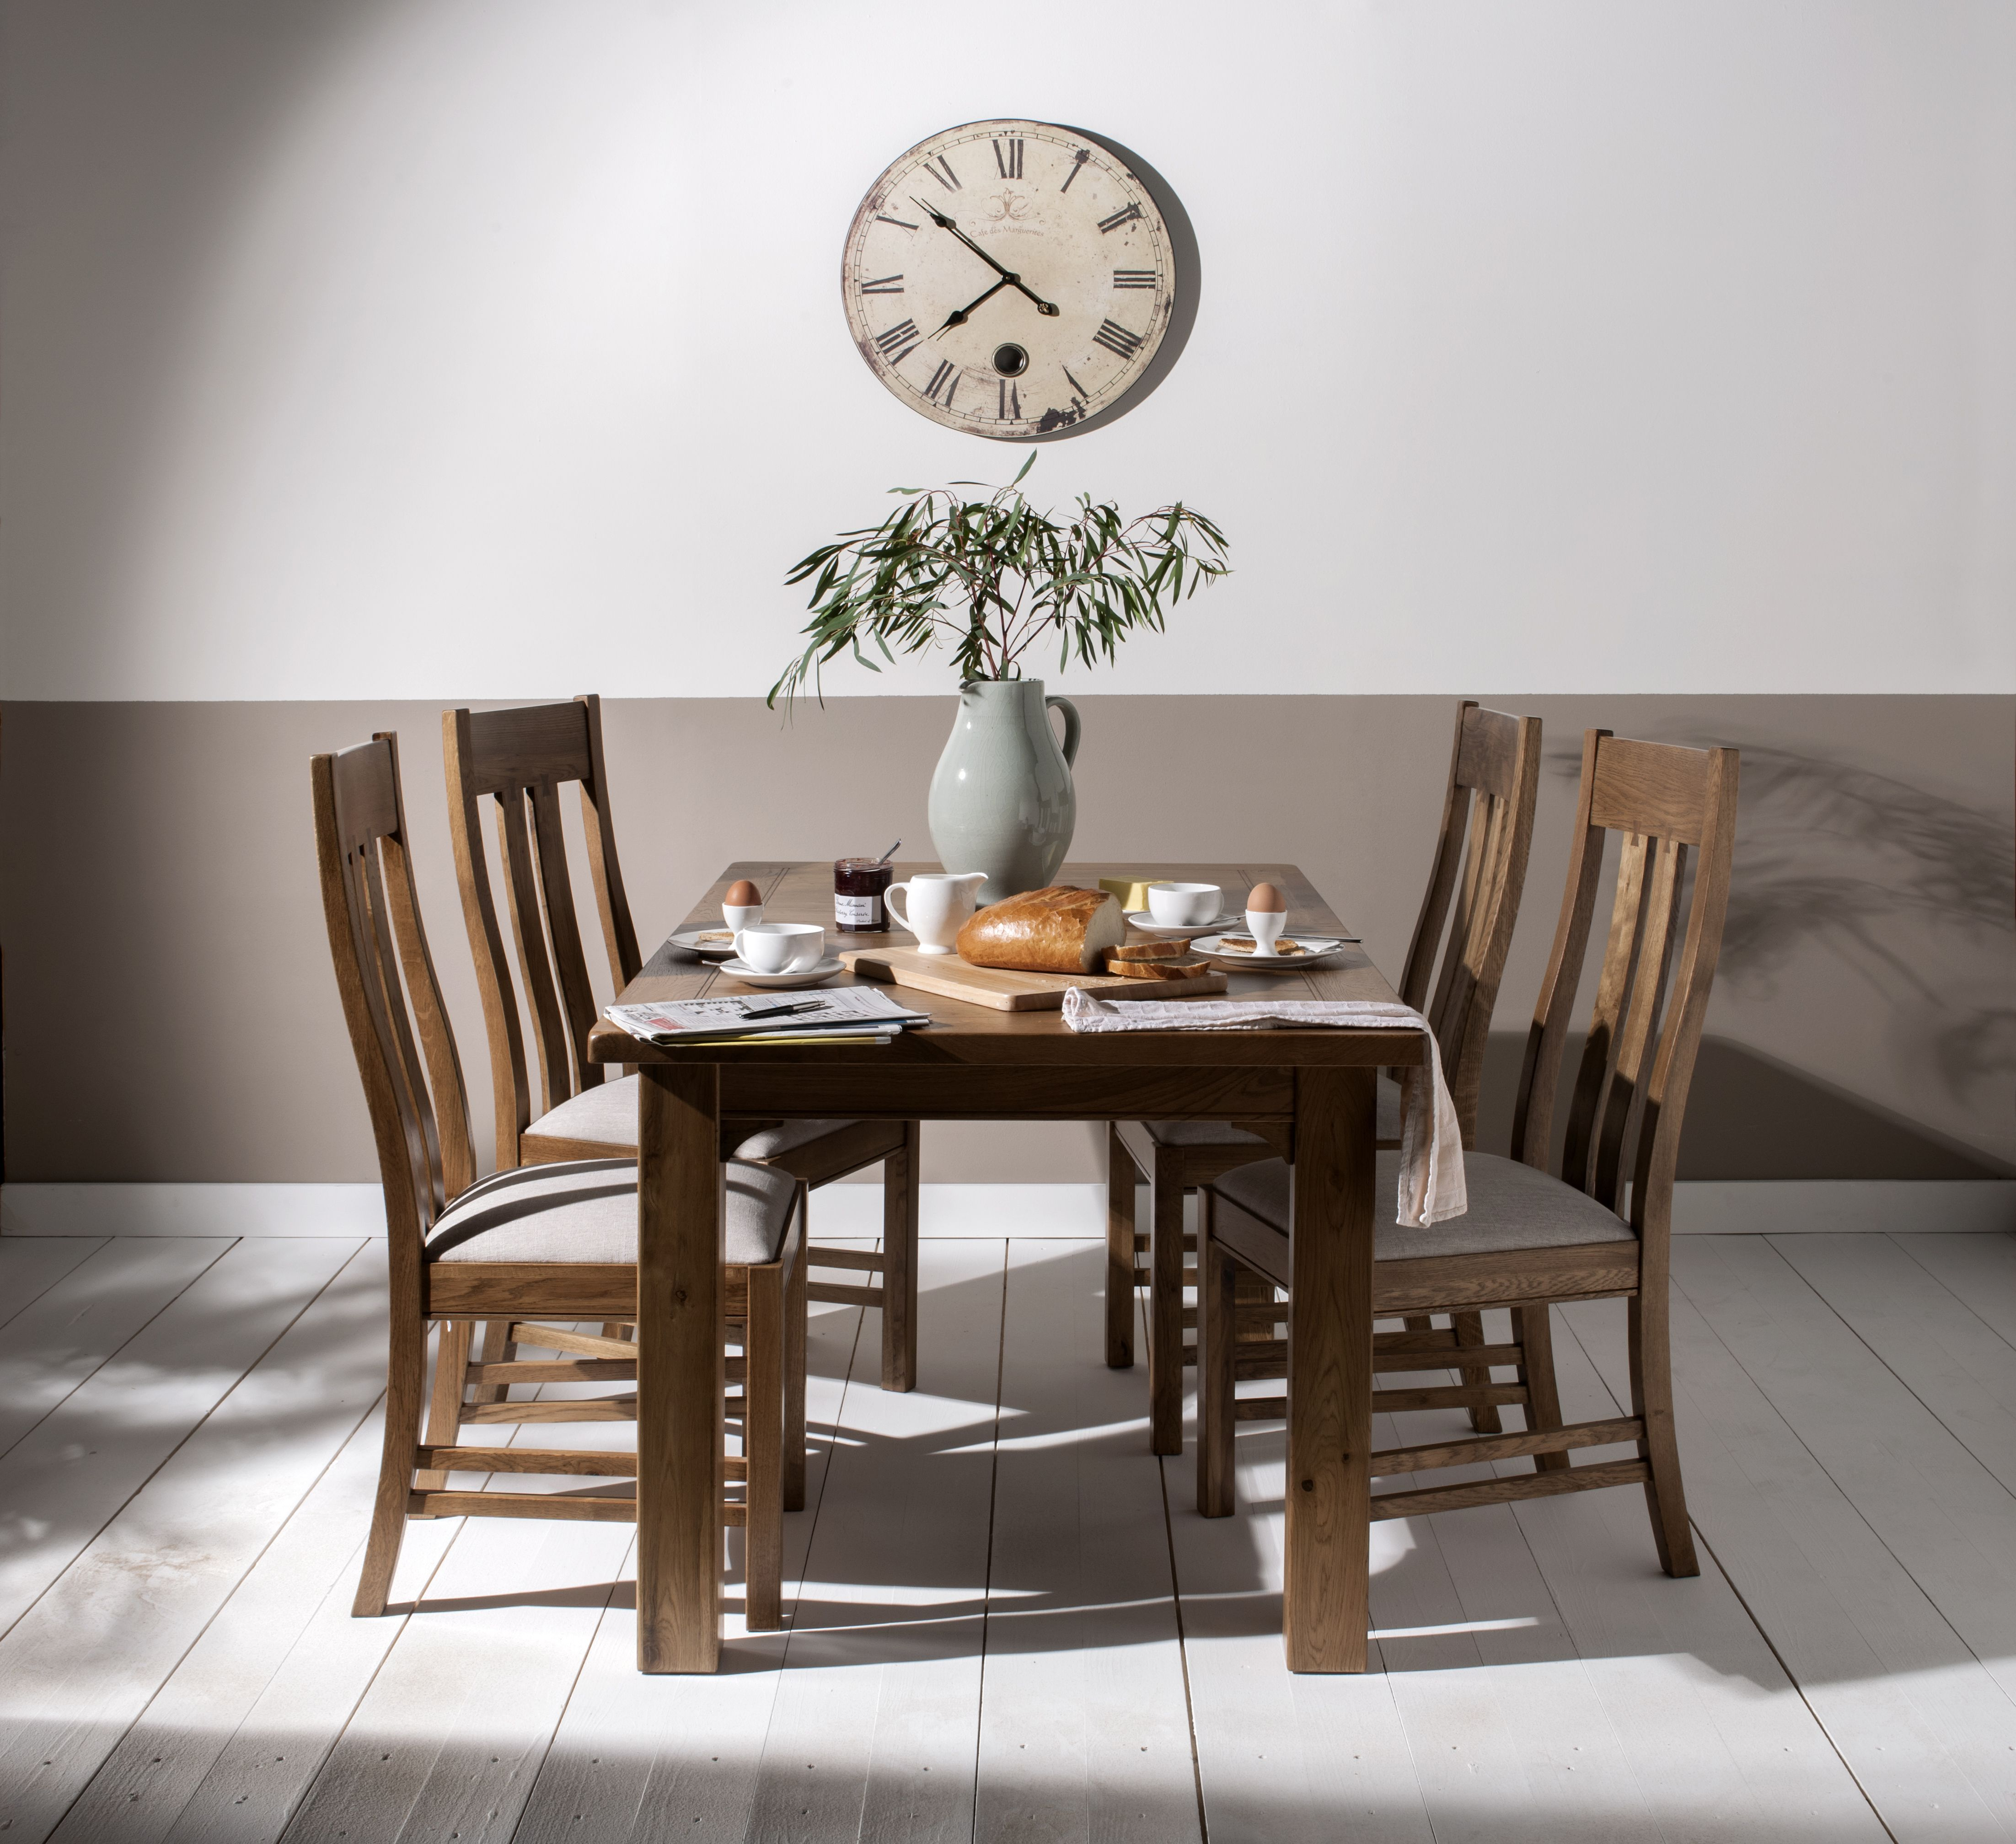 Designed to bring a touch of rustic modernity to your home.